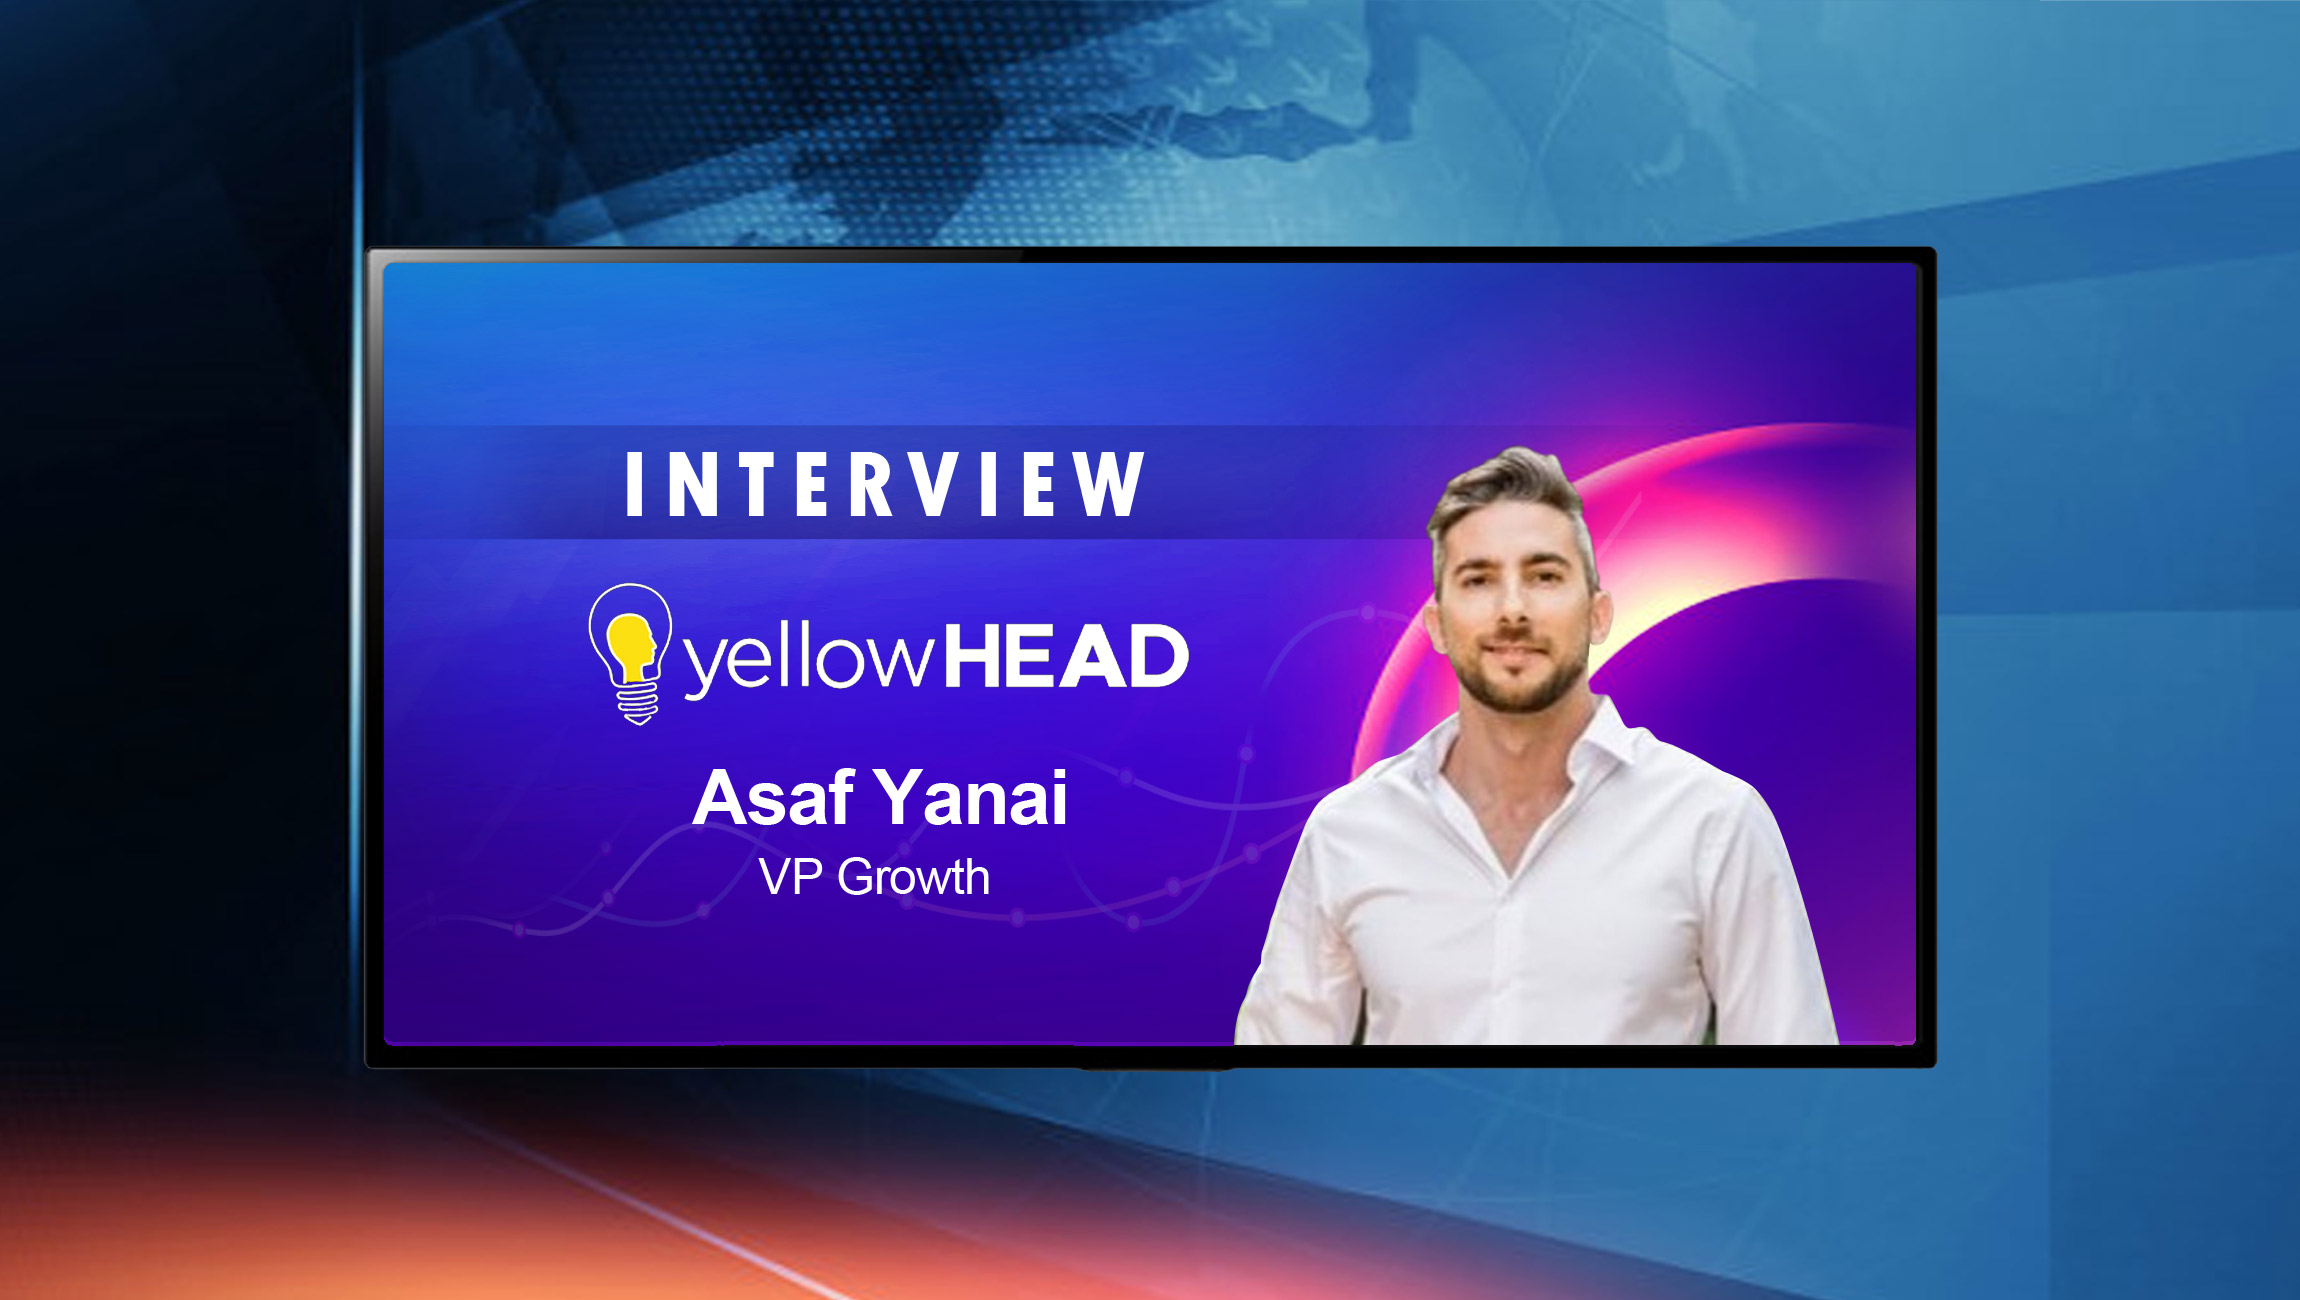 SalesTechStar Interview with Asaf Yanai, VP Growth at yellowHEAD